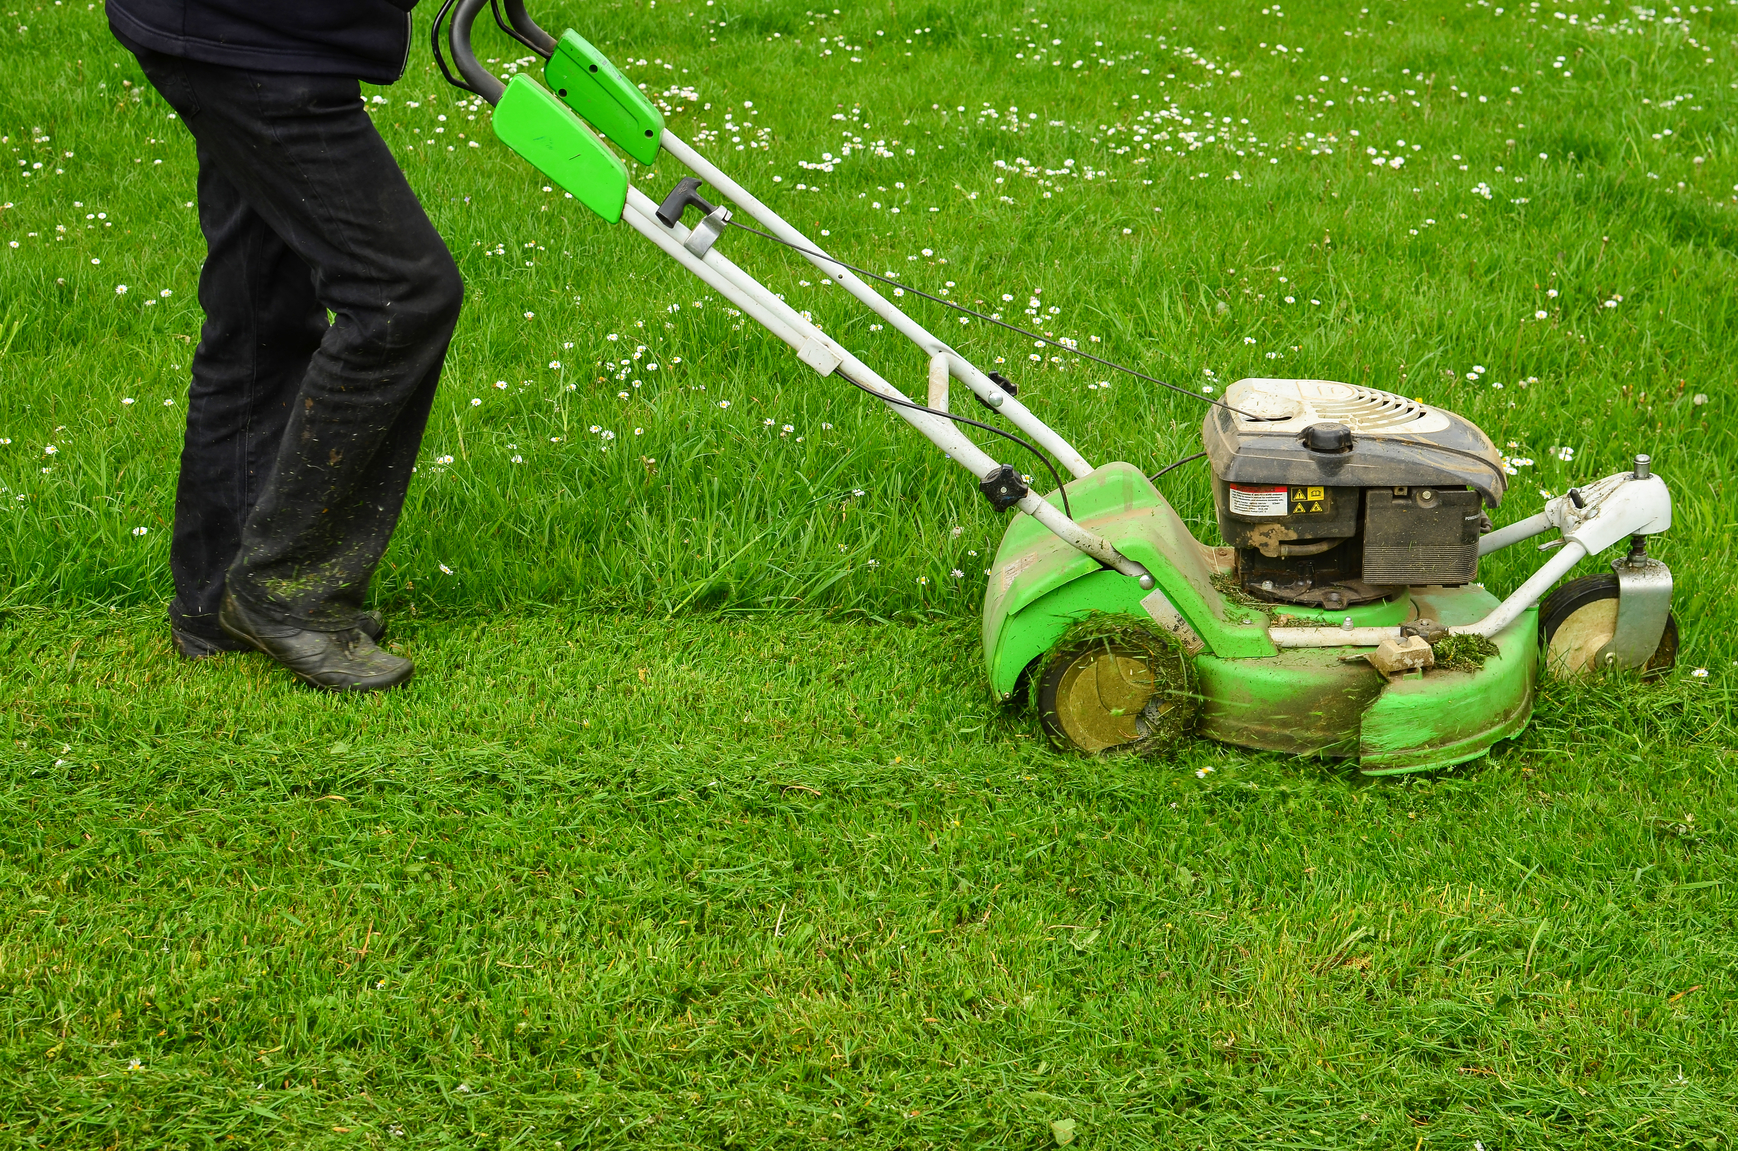 Tips for mowing a wet lawn snappy 39 s for Lawn mower cutting grass